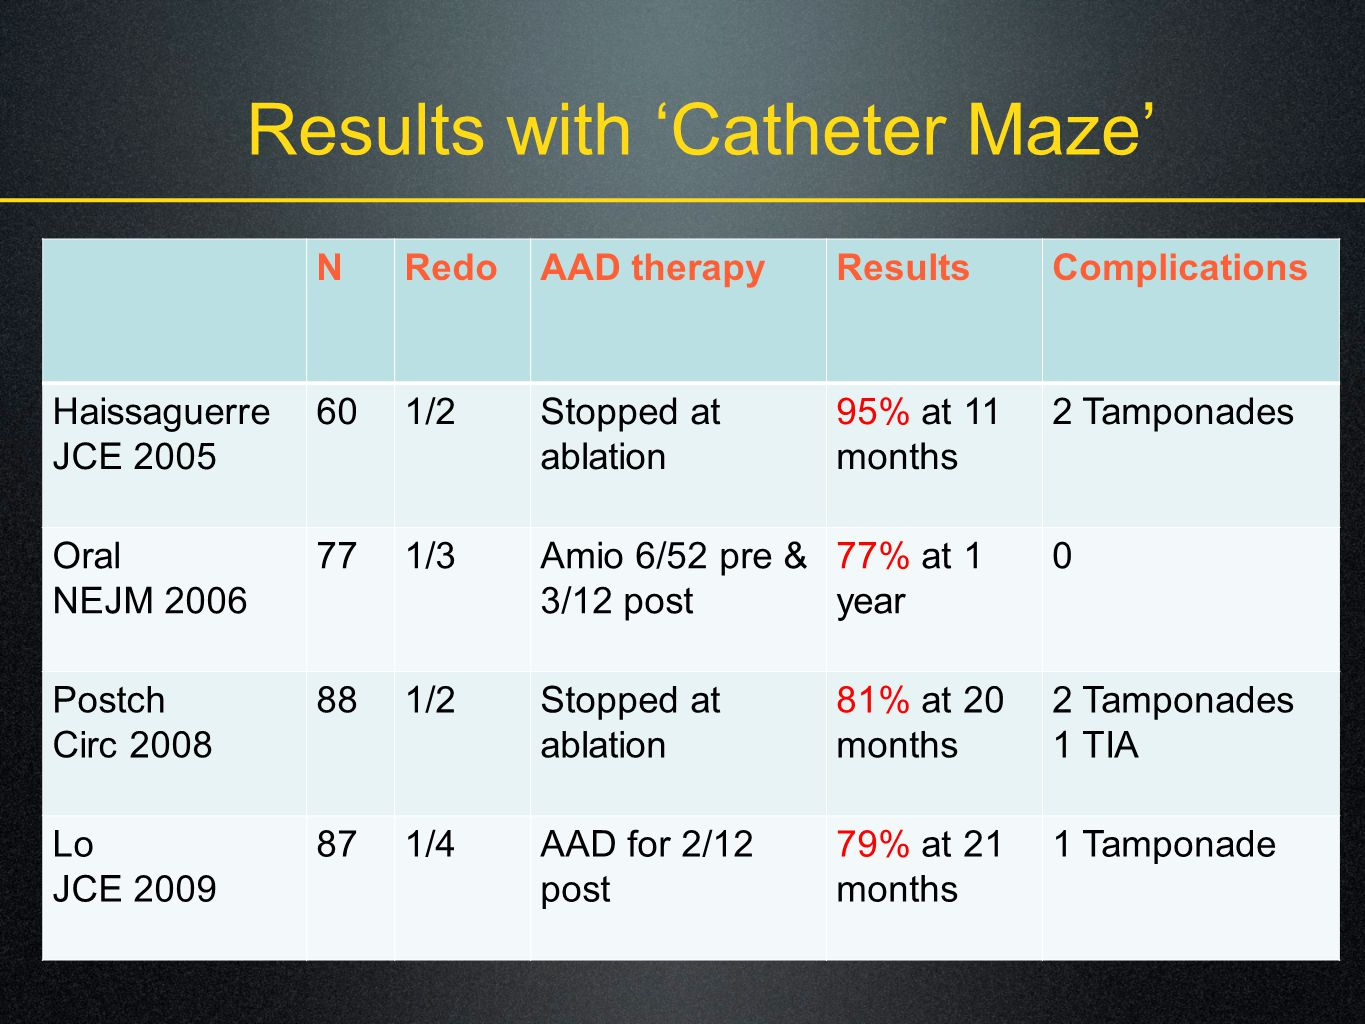 Results with Catheter Maze NRedoAAD therapyResultsComplications Haissaguerre JCE 2005 601/2Stopped at ablation 95% at 11 months 2 Tamponades Oral NEJM 2006 771/3Amio 6/52 pre & 3/12 post 77% at 1 year 0 Postch Circ 2008 881/2Stopped at ablation 81% at 20 months 2 Tamponades 1 TIA Lo JCE 2009 871/4AAD for 2/12 post 79% at 21 months 1 Tamponade